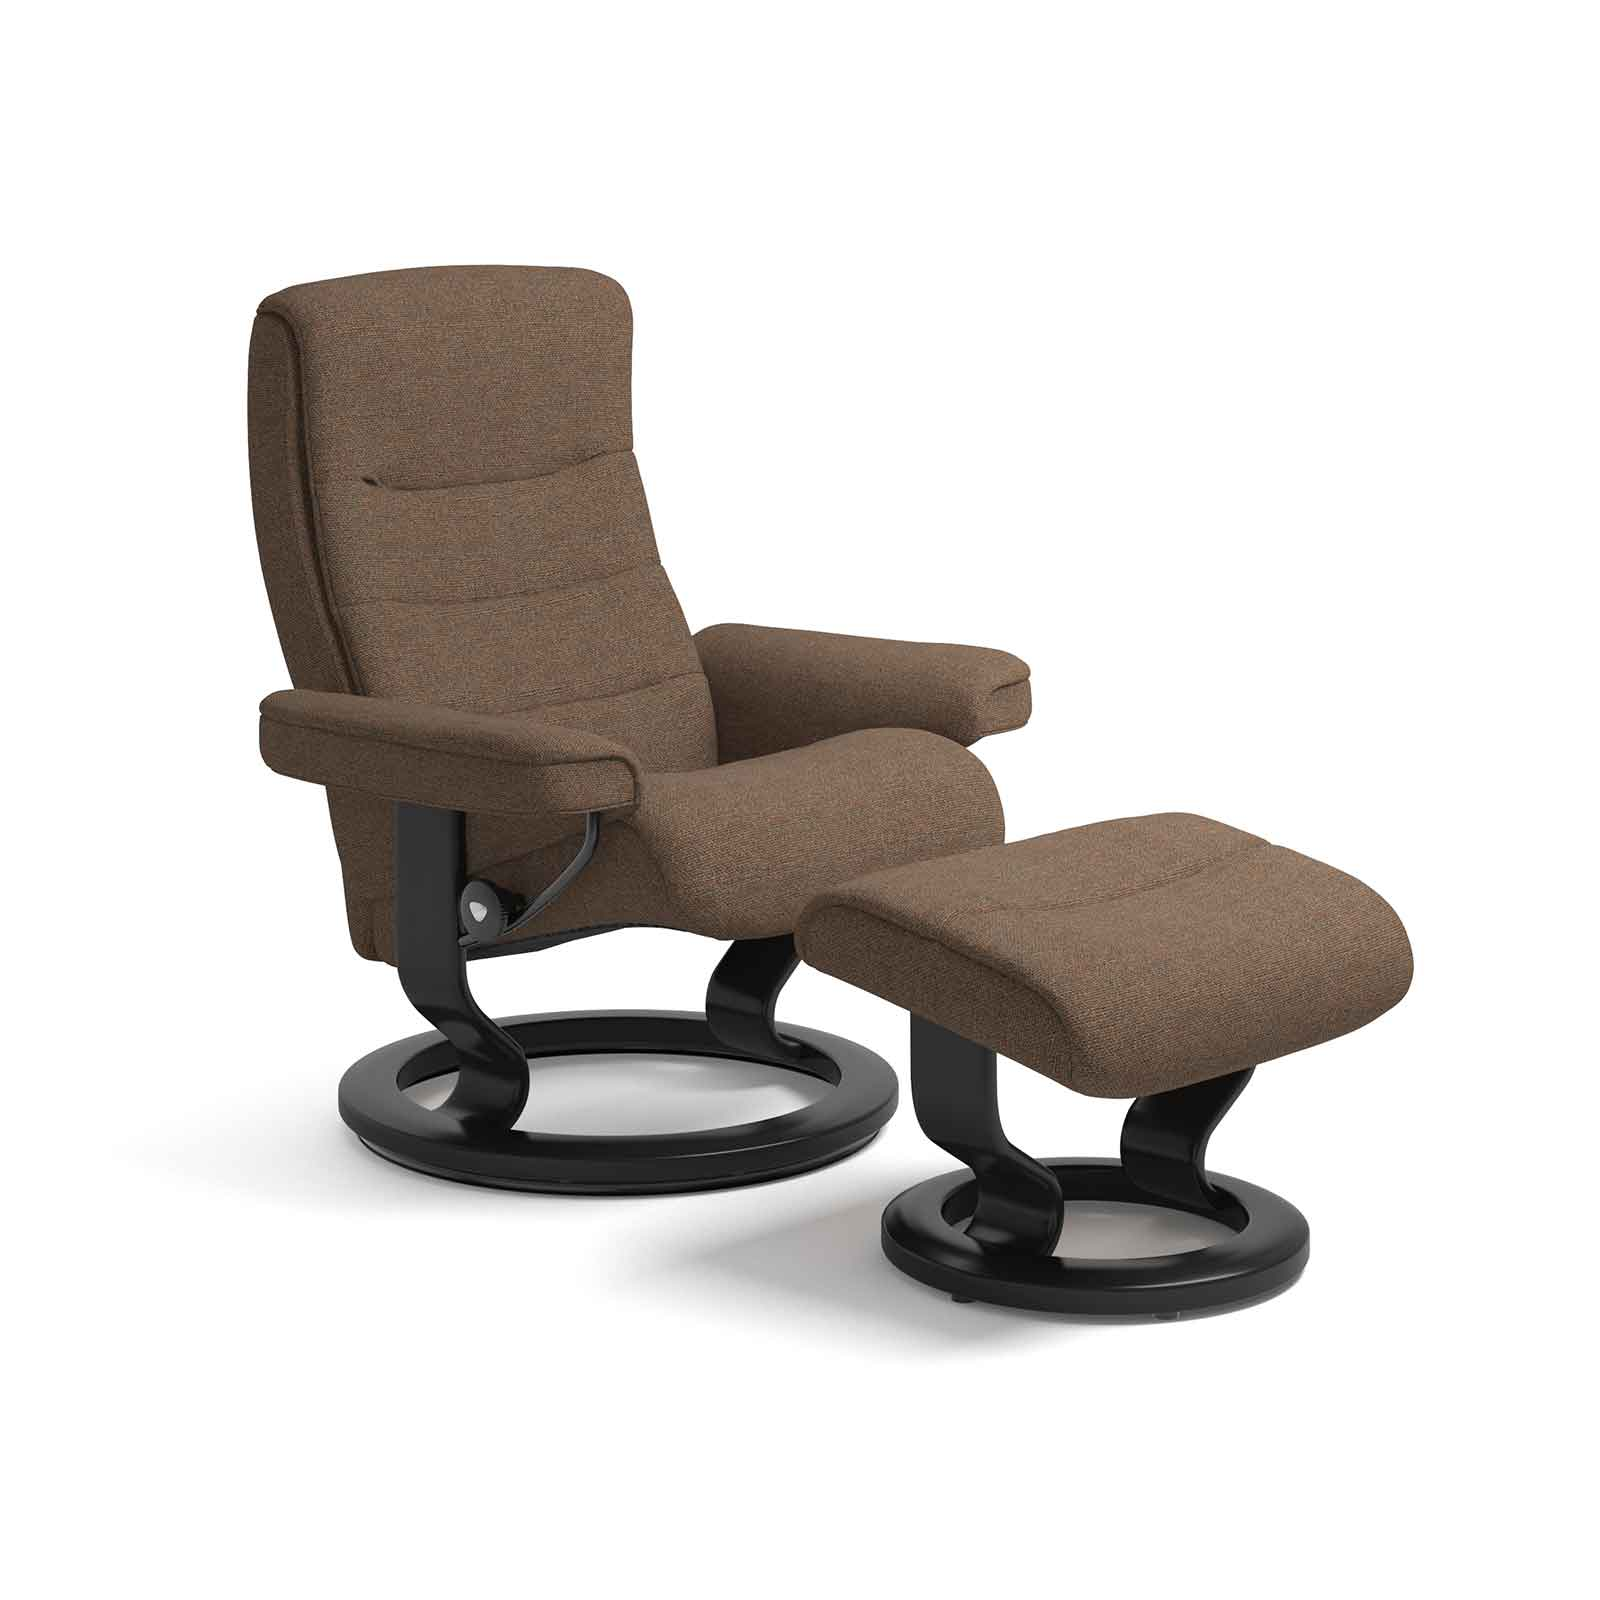 Fernsehsessel Stoff Stressless Sessel Nordic Iris Orange Mit Hocker Stressless